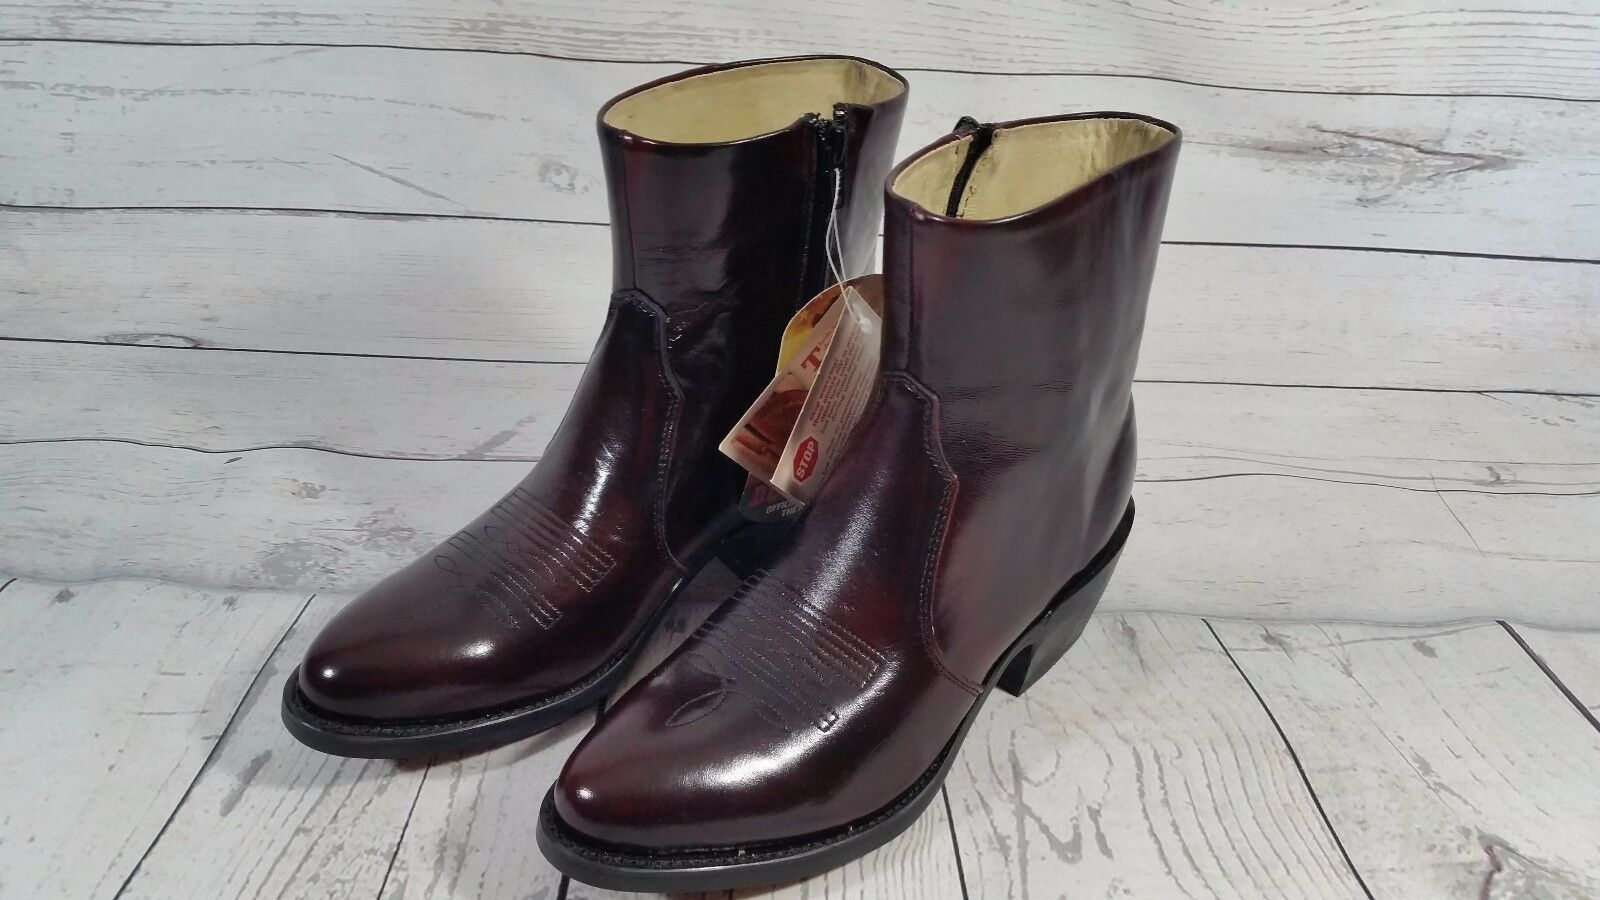 NEW  Durango Womens Size 6EE Boots Leather Western Cowgirl Boots with Side Zipper  sell like hot cakes